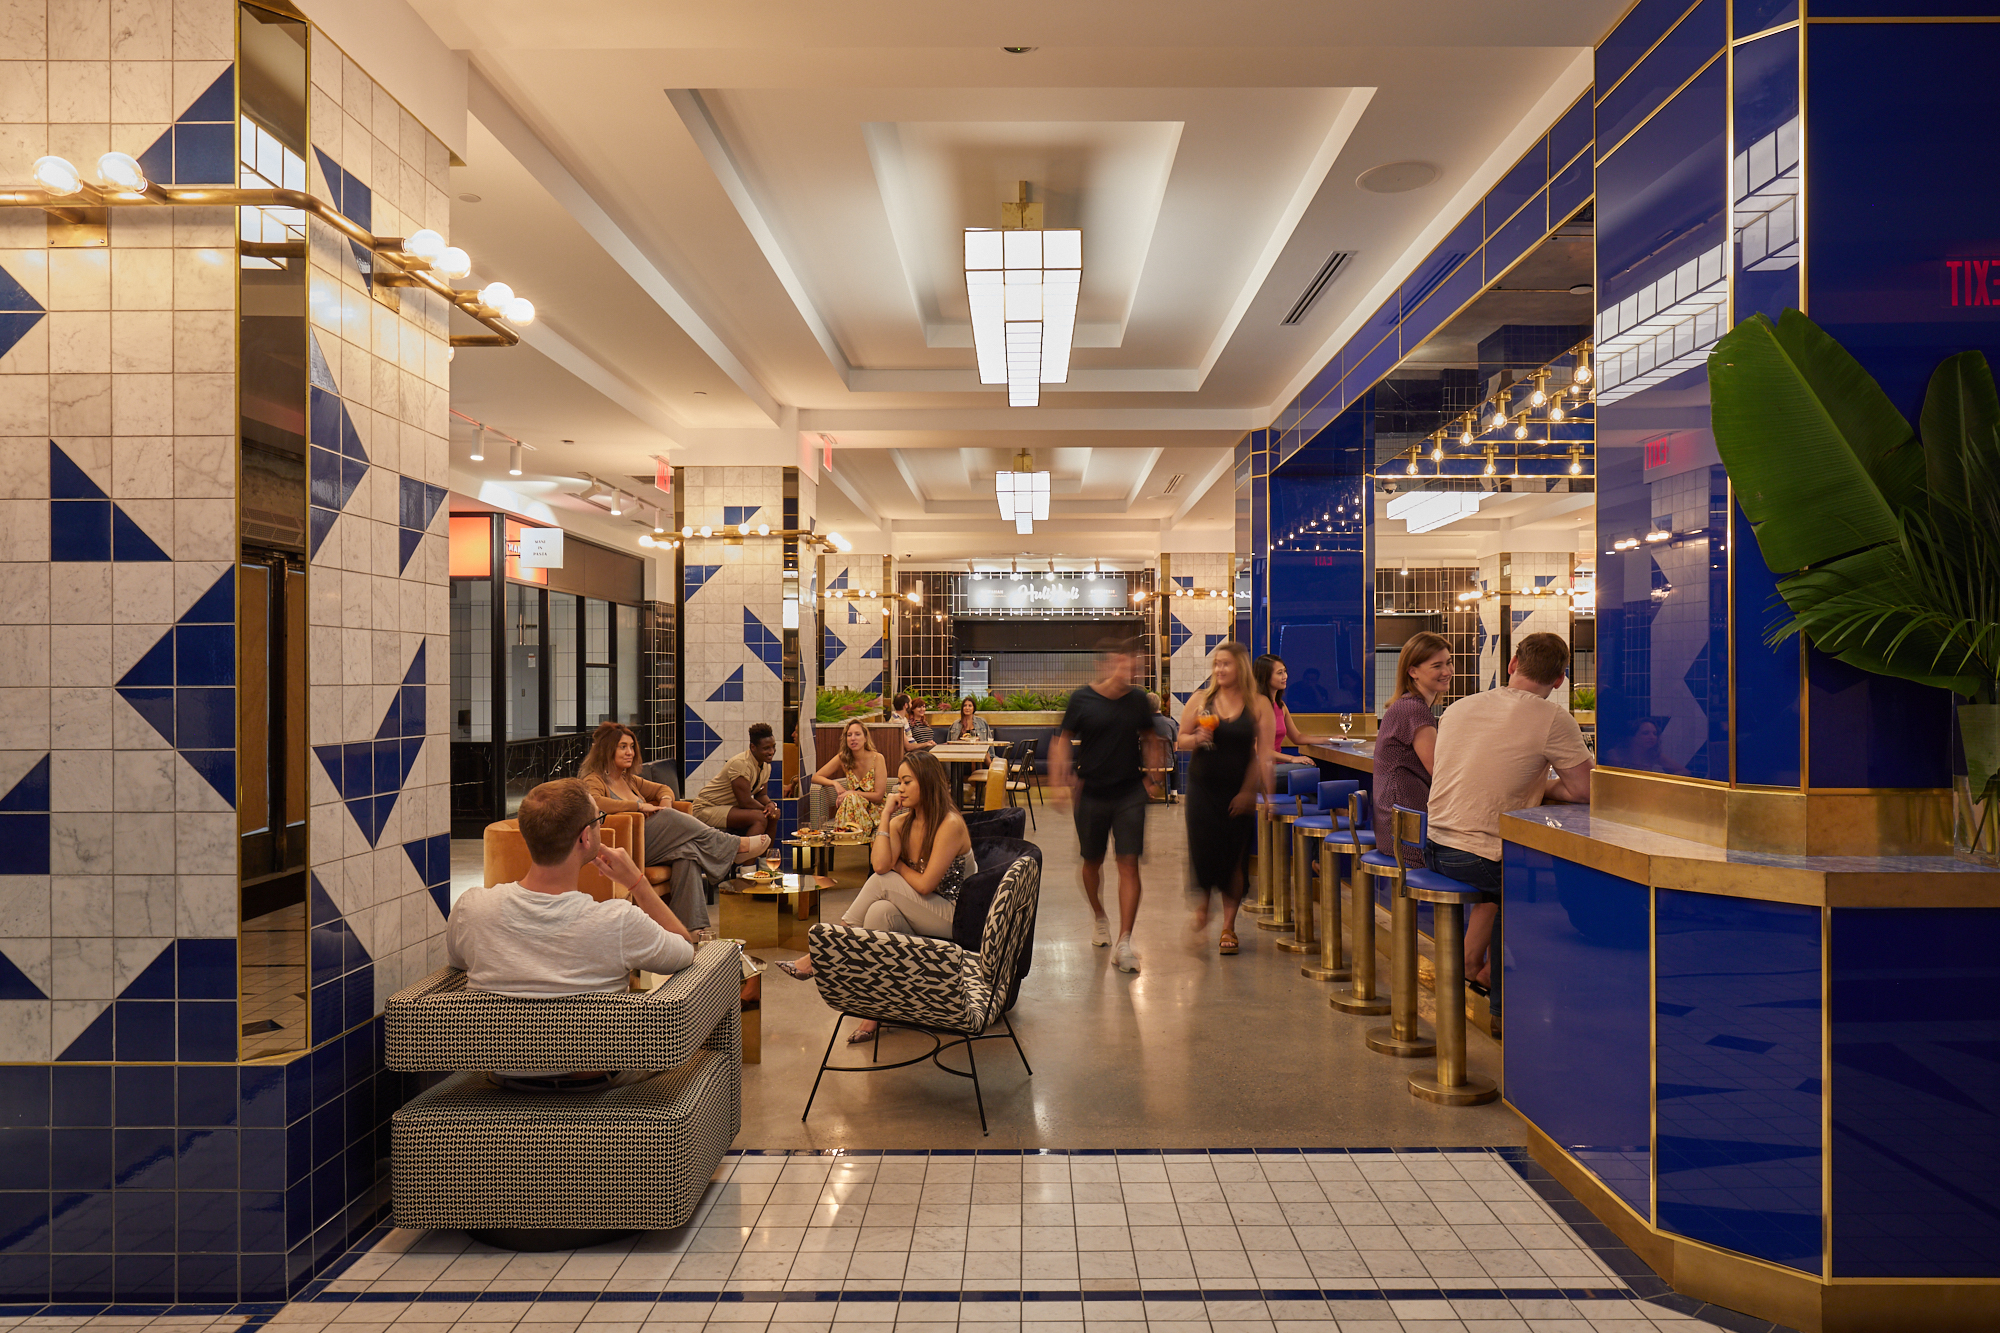 See inside The Deco, an eclectic new food hall in Midtown West  16sqft